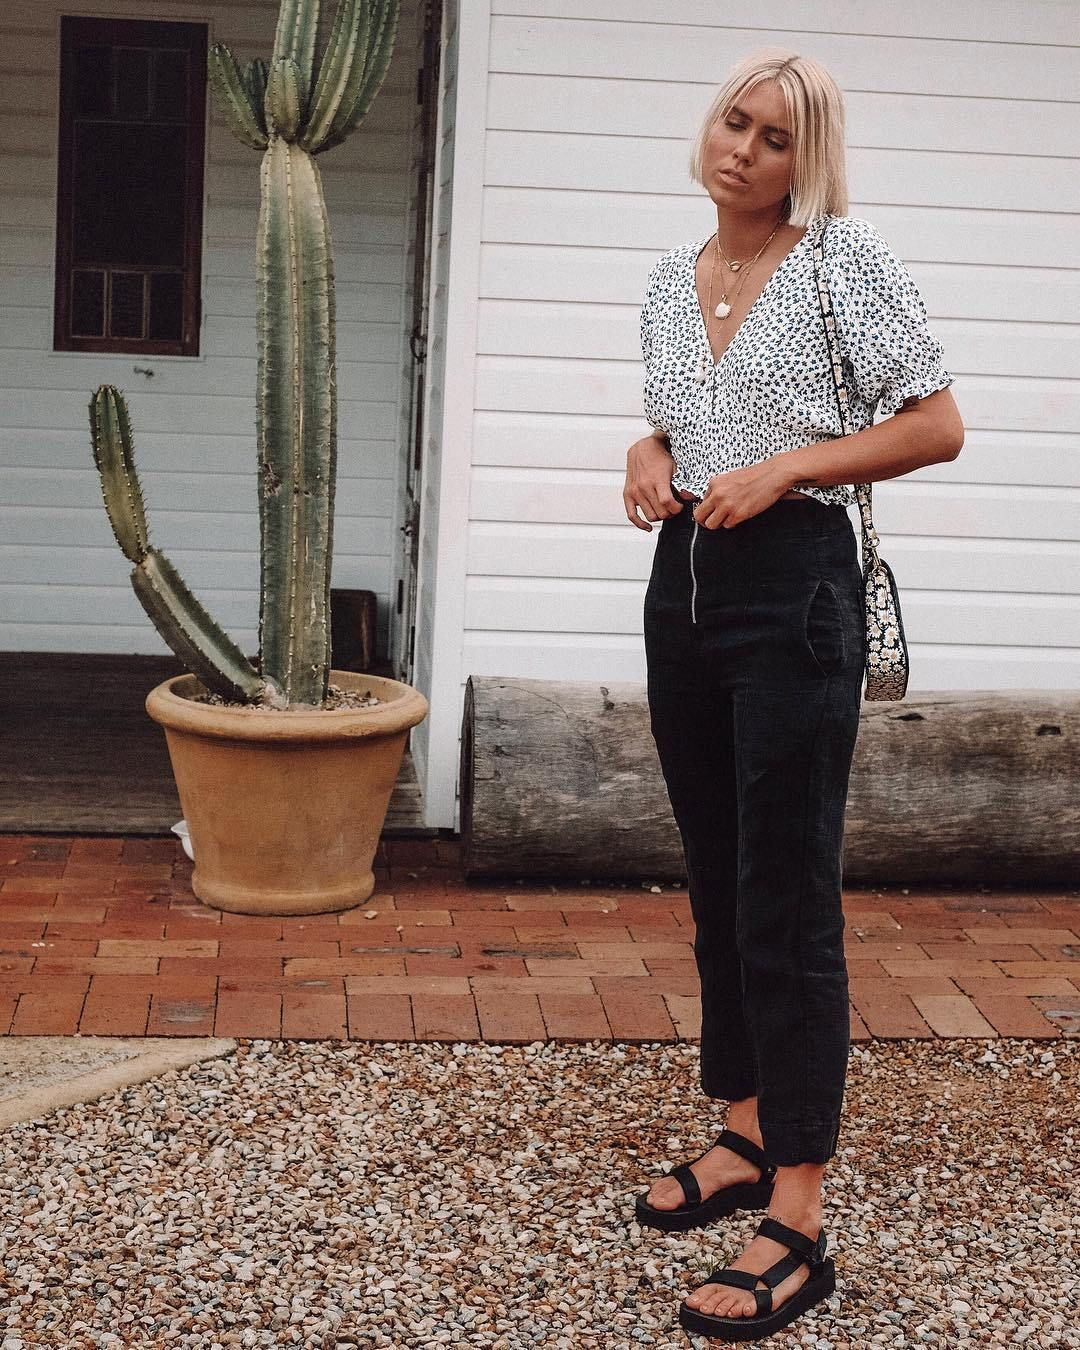 Teva sandals outfit, Sandals outfit